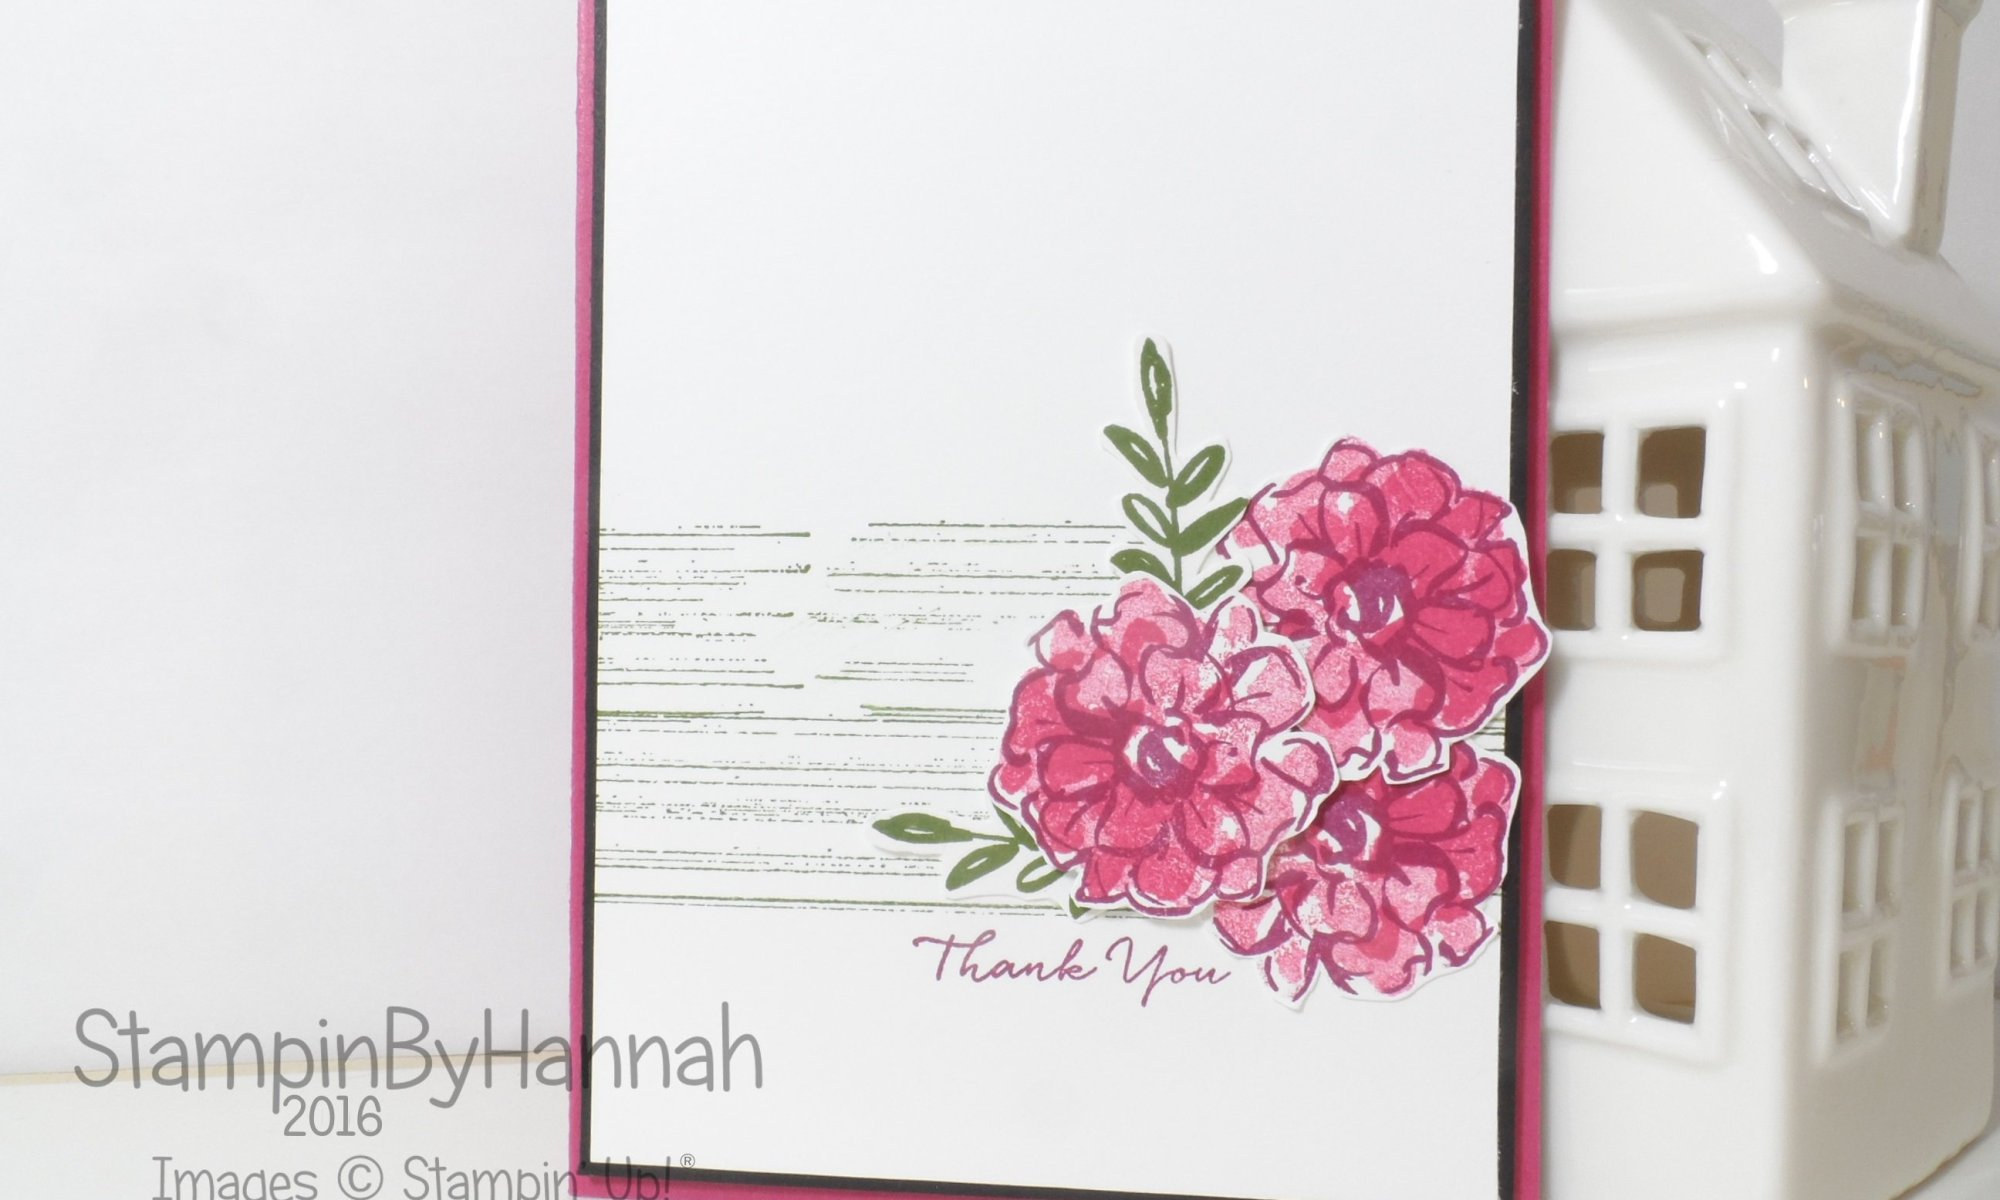 Stampin' Up! UK What I Love Global Design Project #22